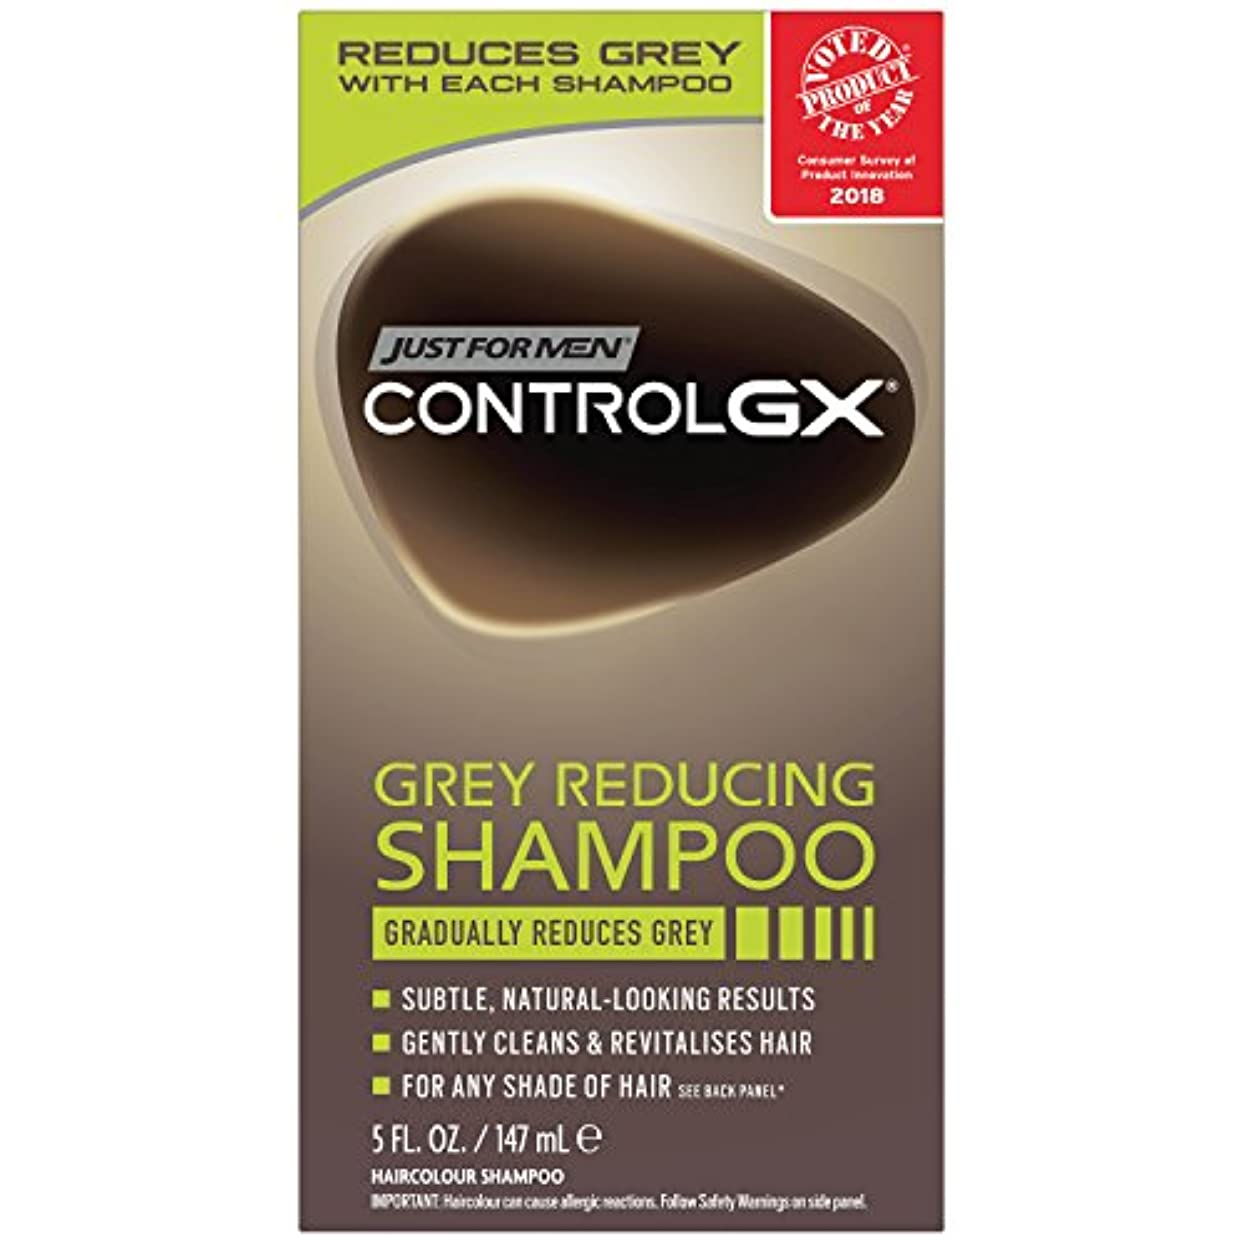 年宿判定(Grey Reducing Shampoo) - Just For Men Control GX Grey Reducing Shampoo, 5 Fluid Ounce